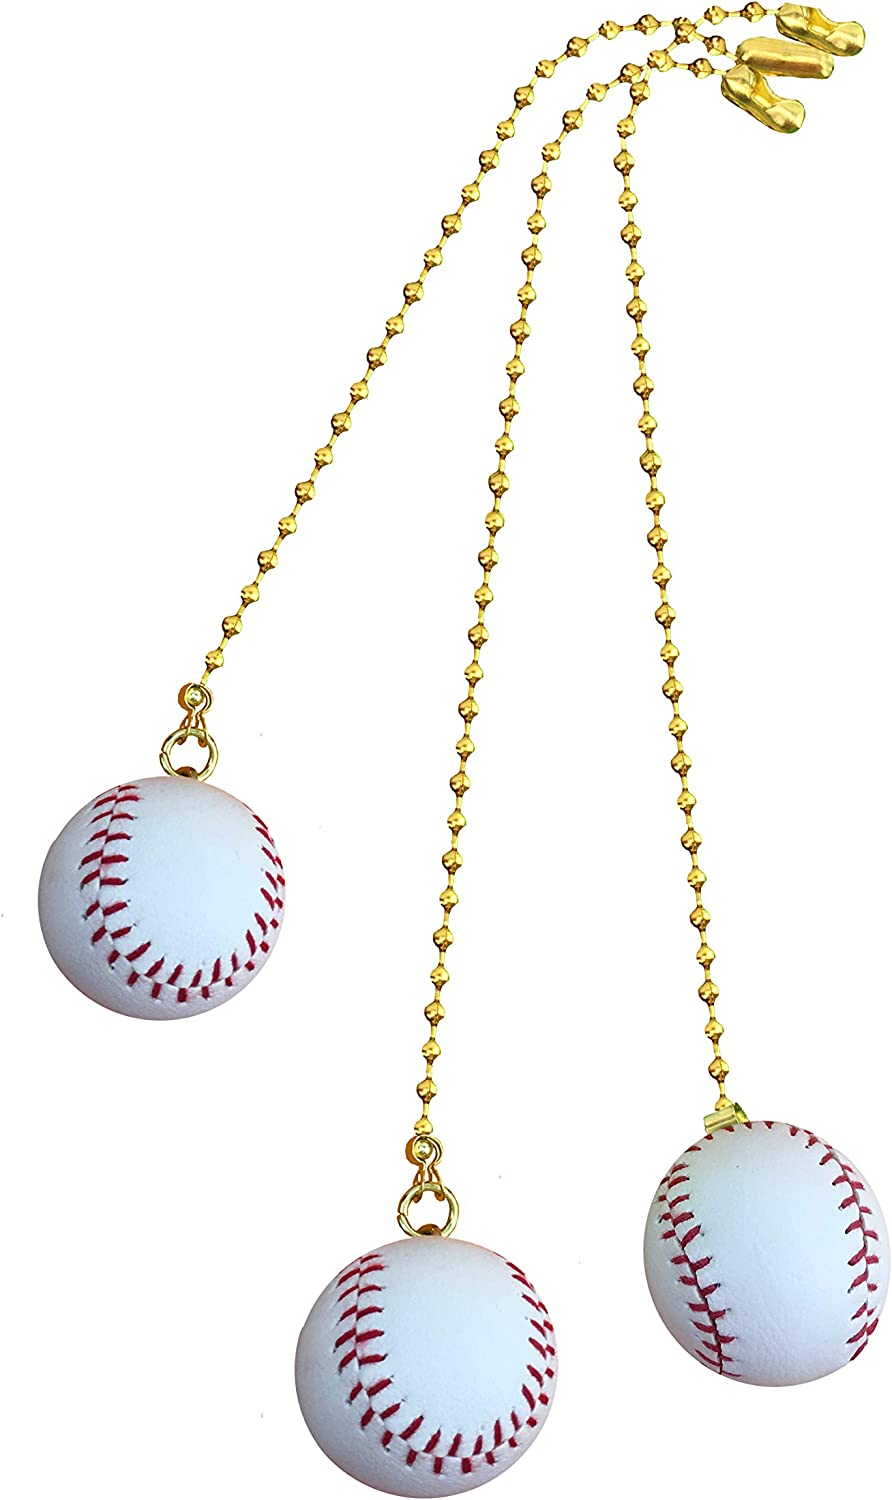 Decorative Sports Baseball Ceiling Fan Pull with beaded chain - 3 pack- FA120 for bedroom, Nursery, kids room, Den